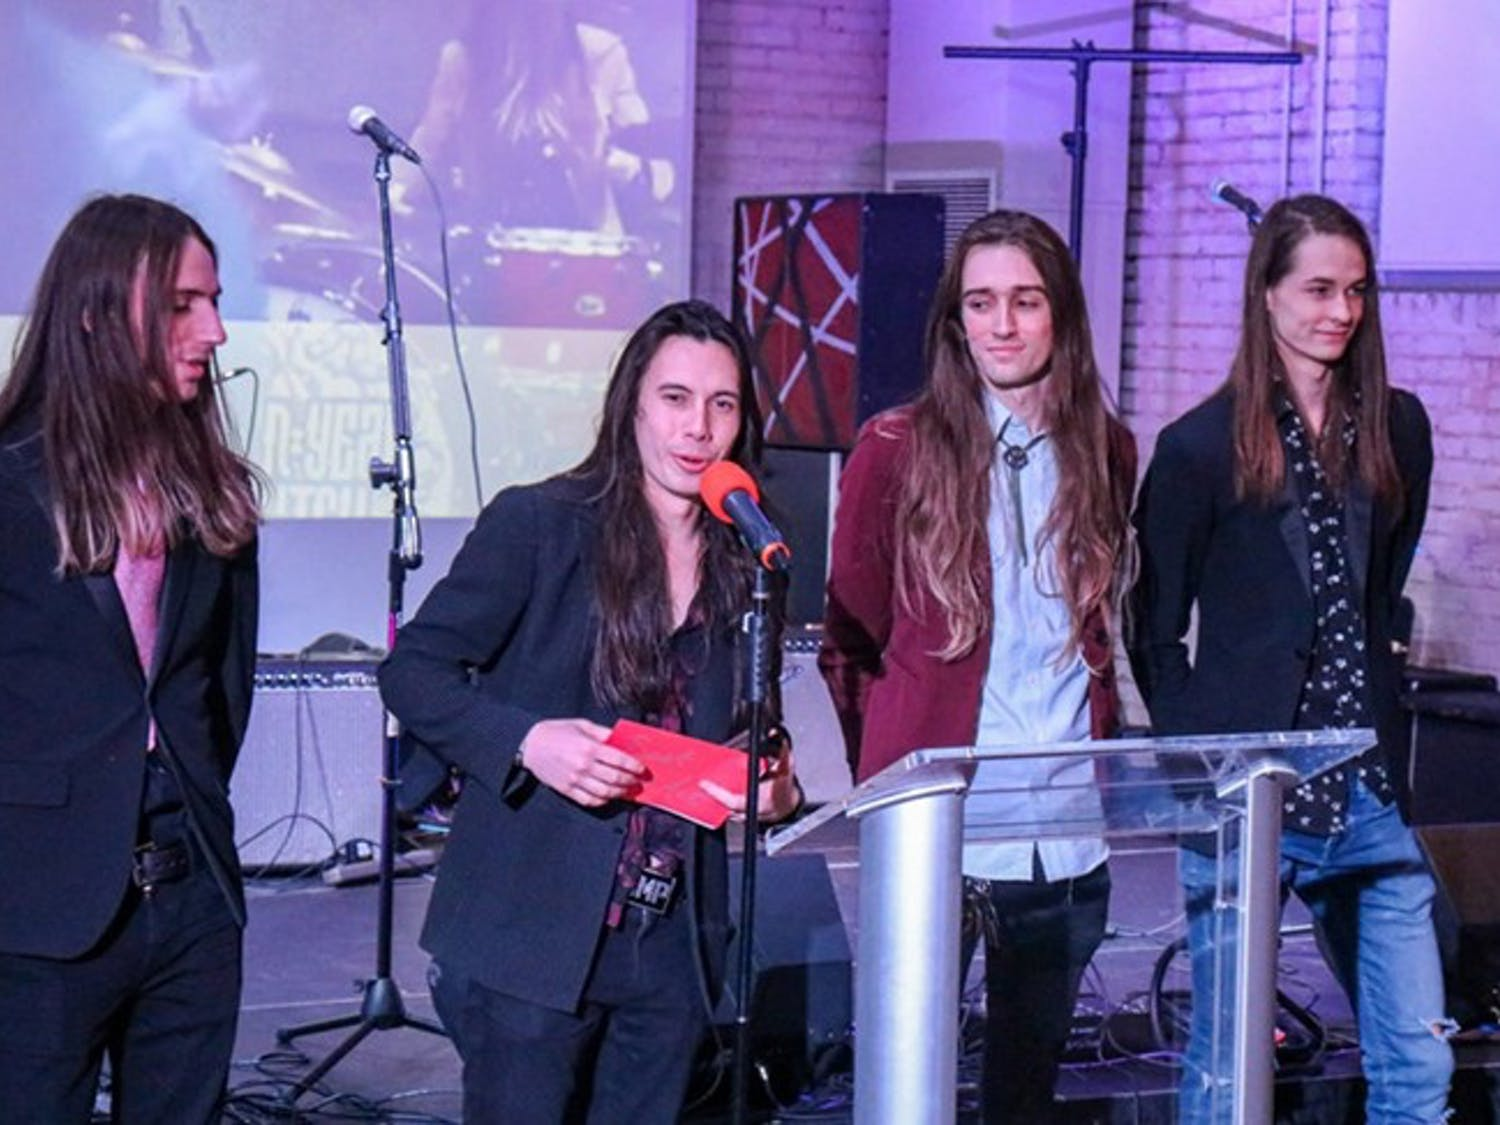 Seven Year Witch gives an acceptance speech after winning Best Live Act in the 2020 Upstate Music Awards.